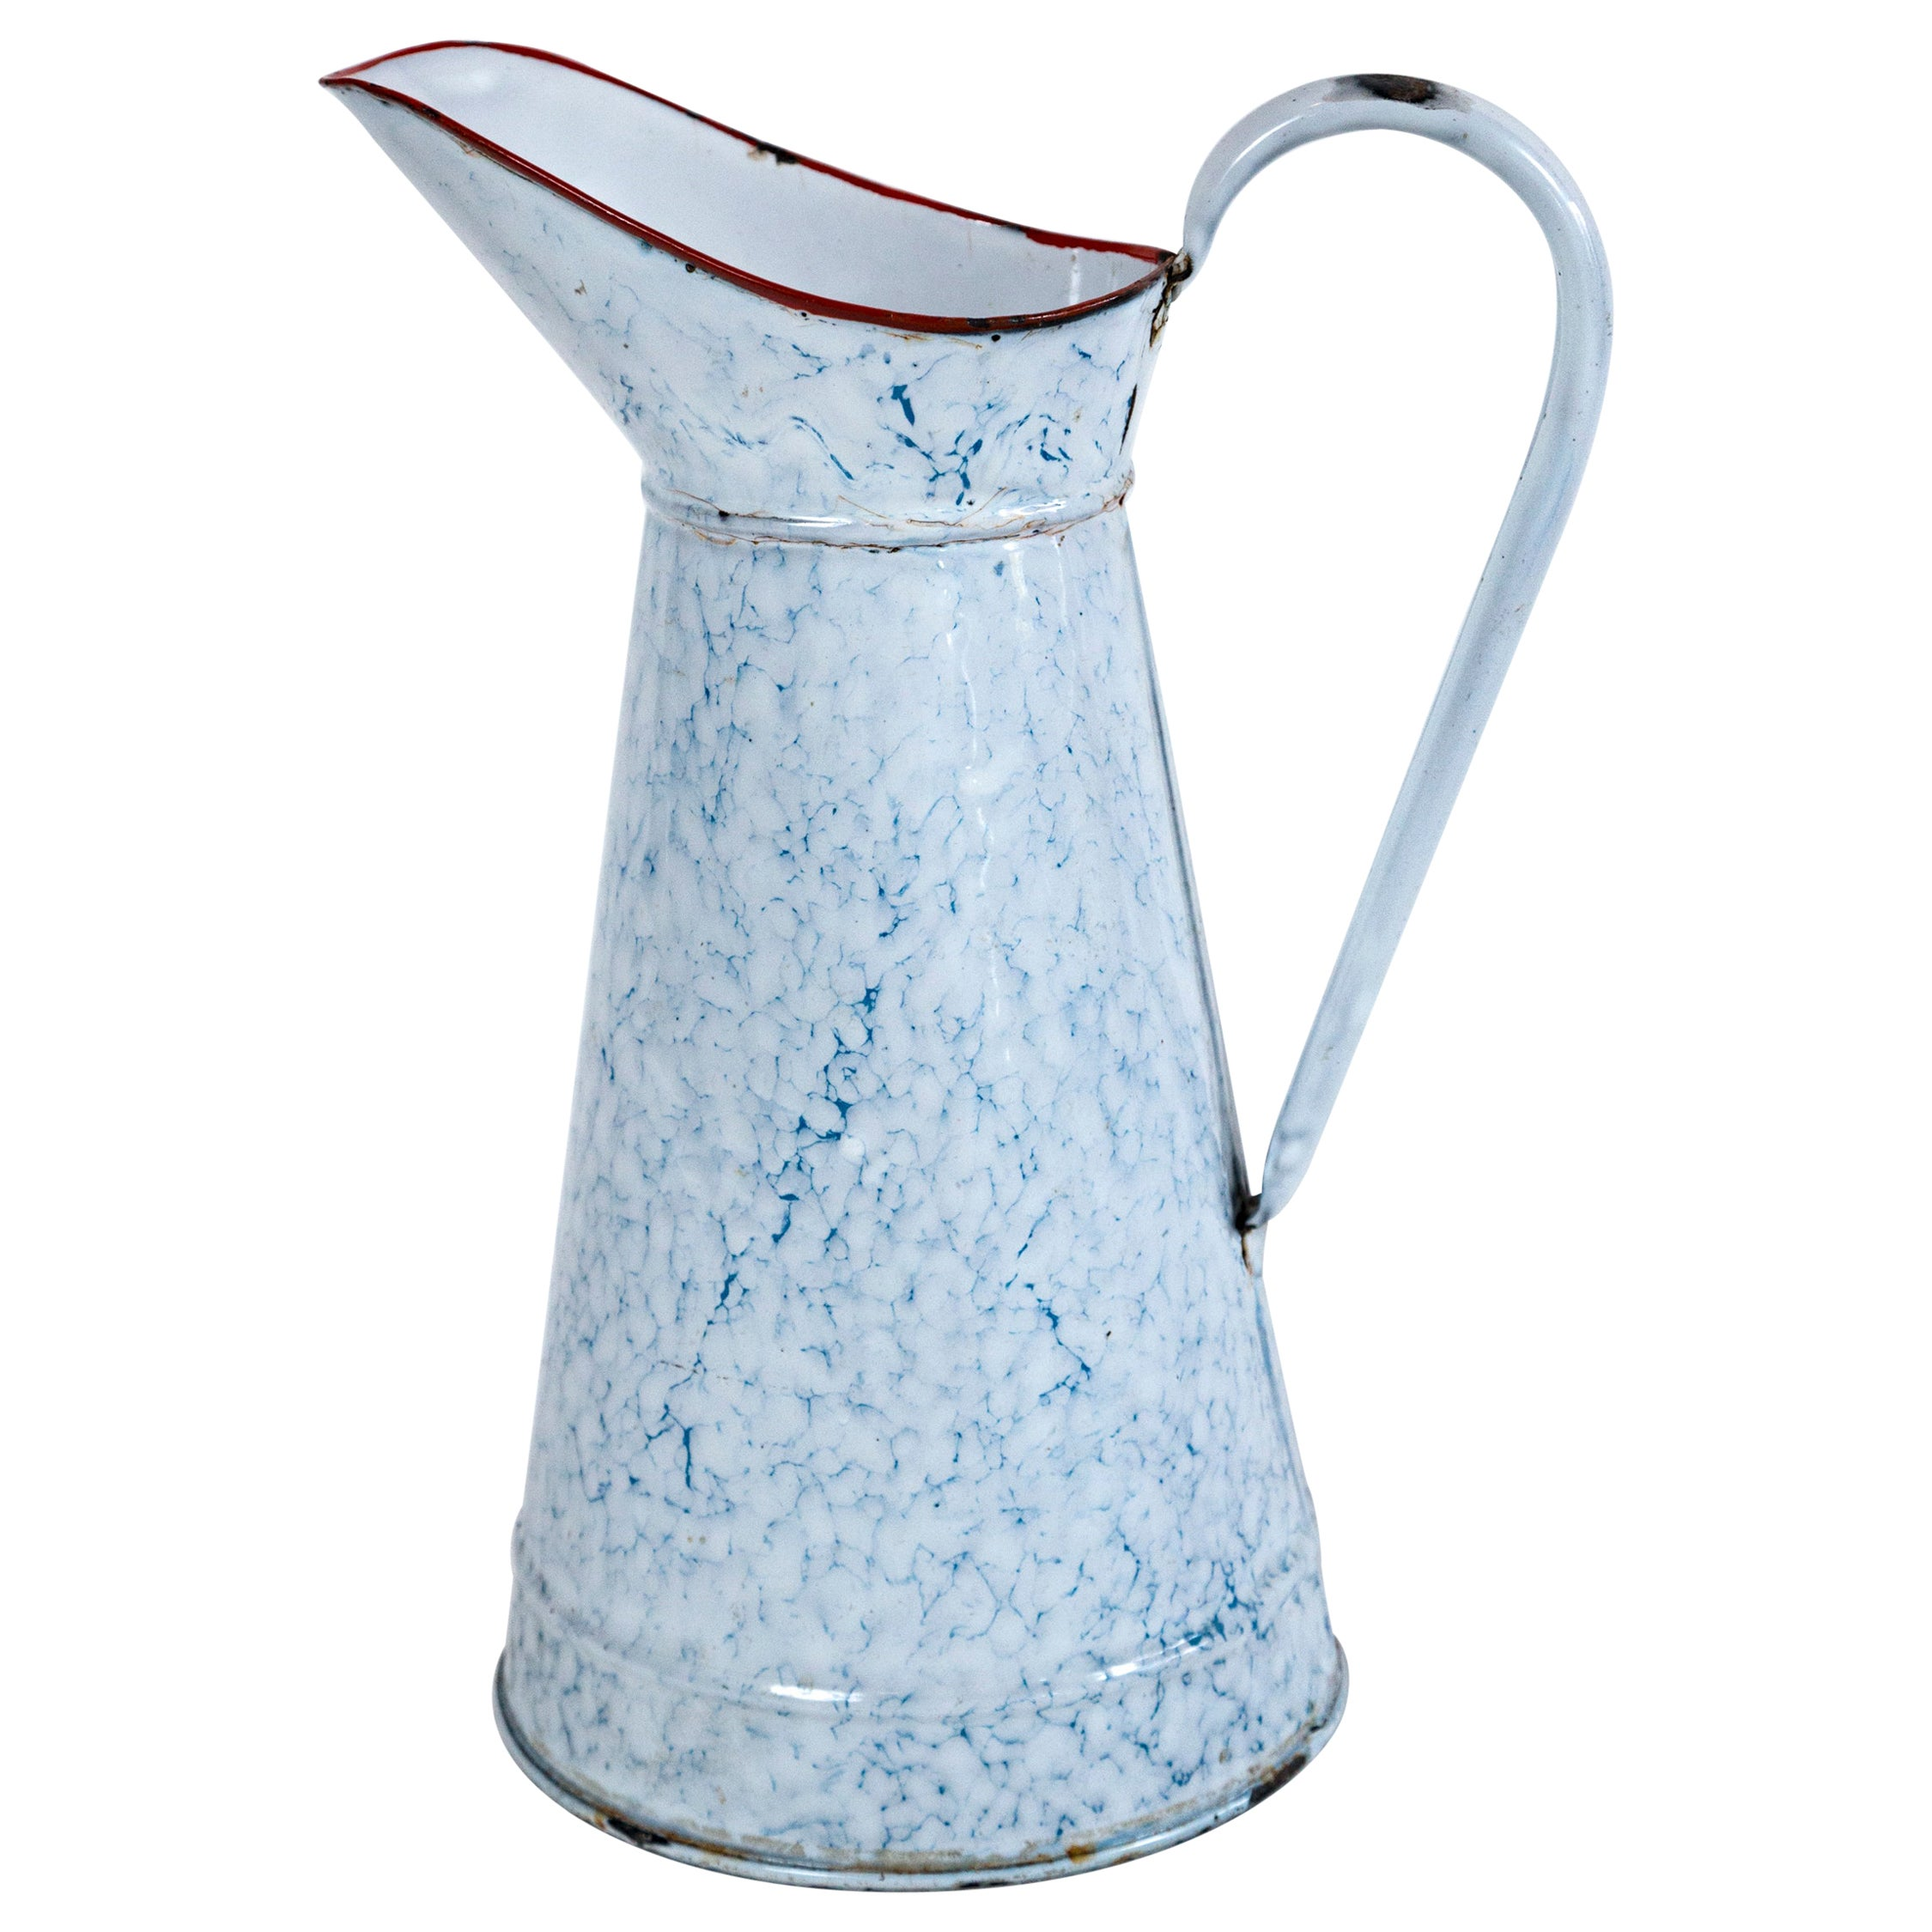 Vintage French Blue and White Enamelware Pitcher, circa 1920's